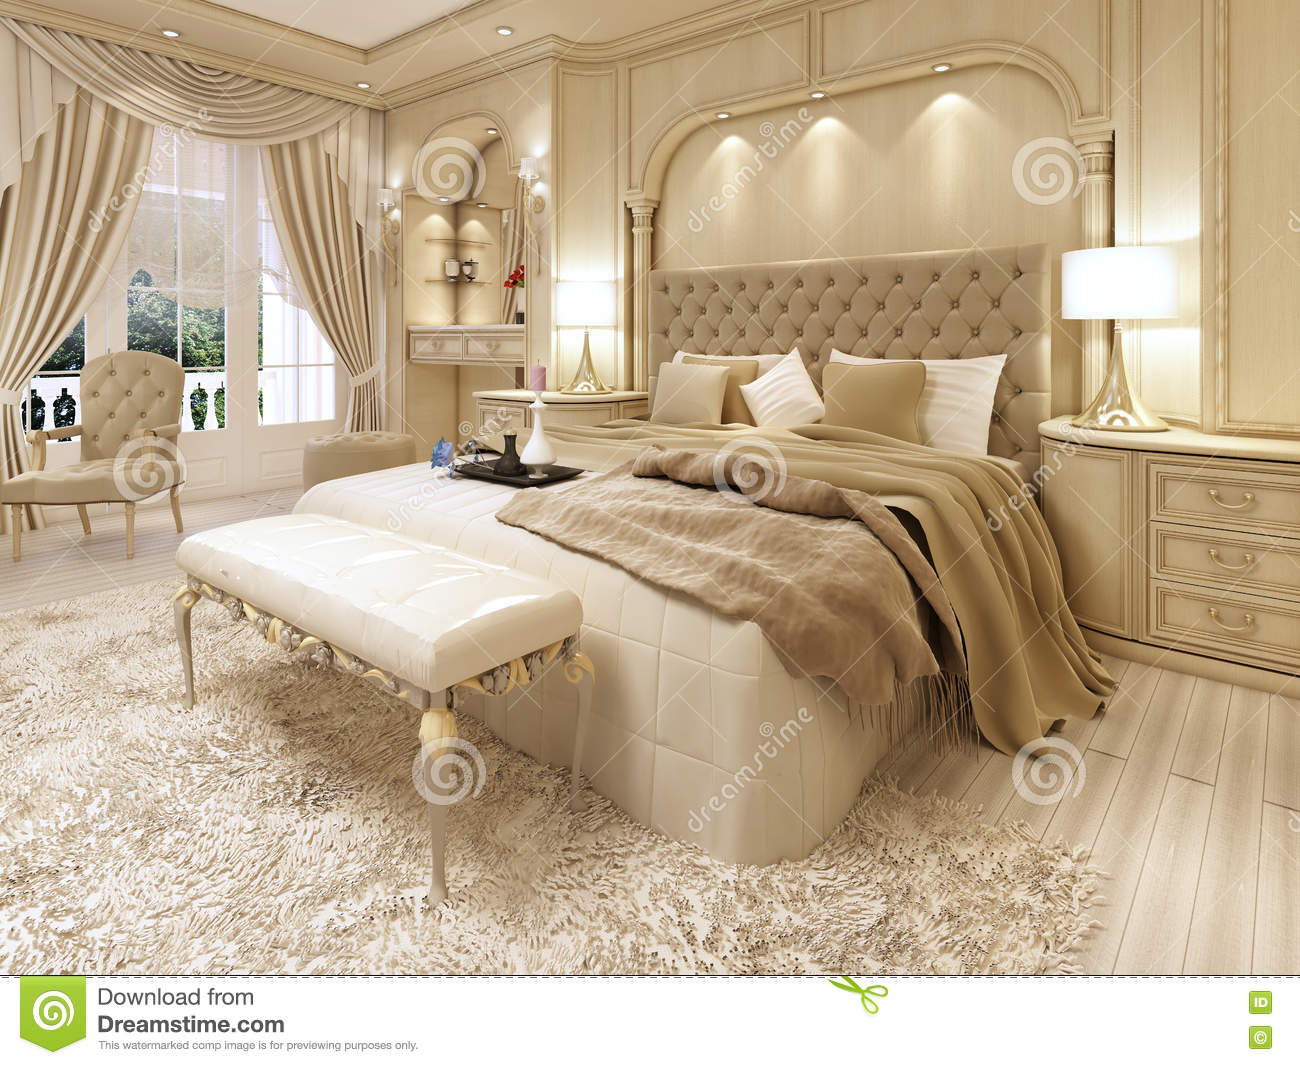 Royalty Free Illustration. Luxury Bed In A Large Neoclassical Bedroom With Decorative Niche